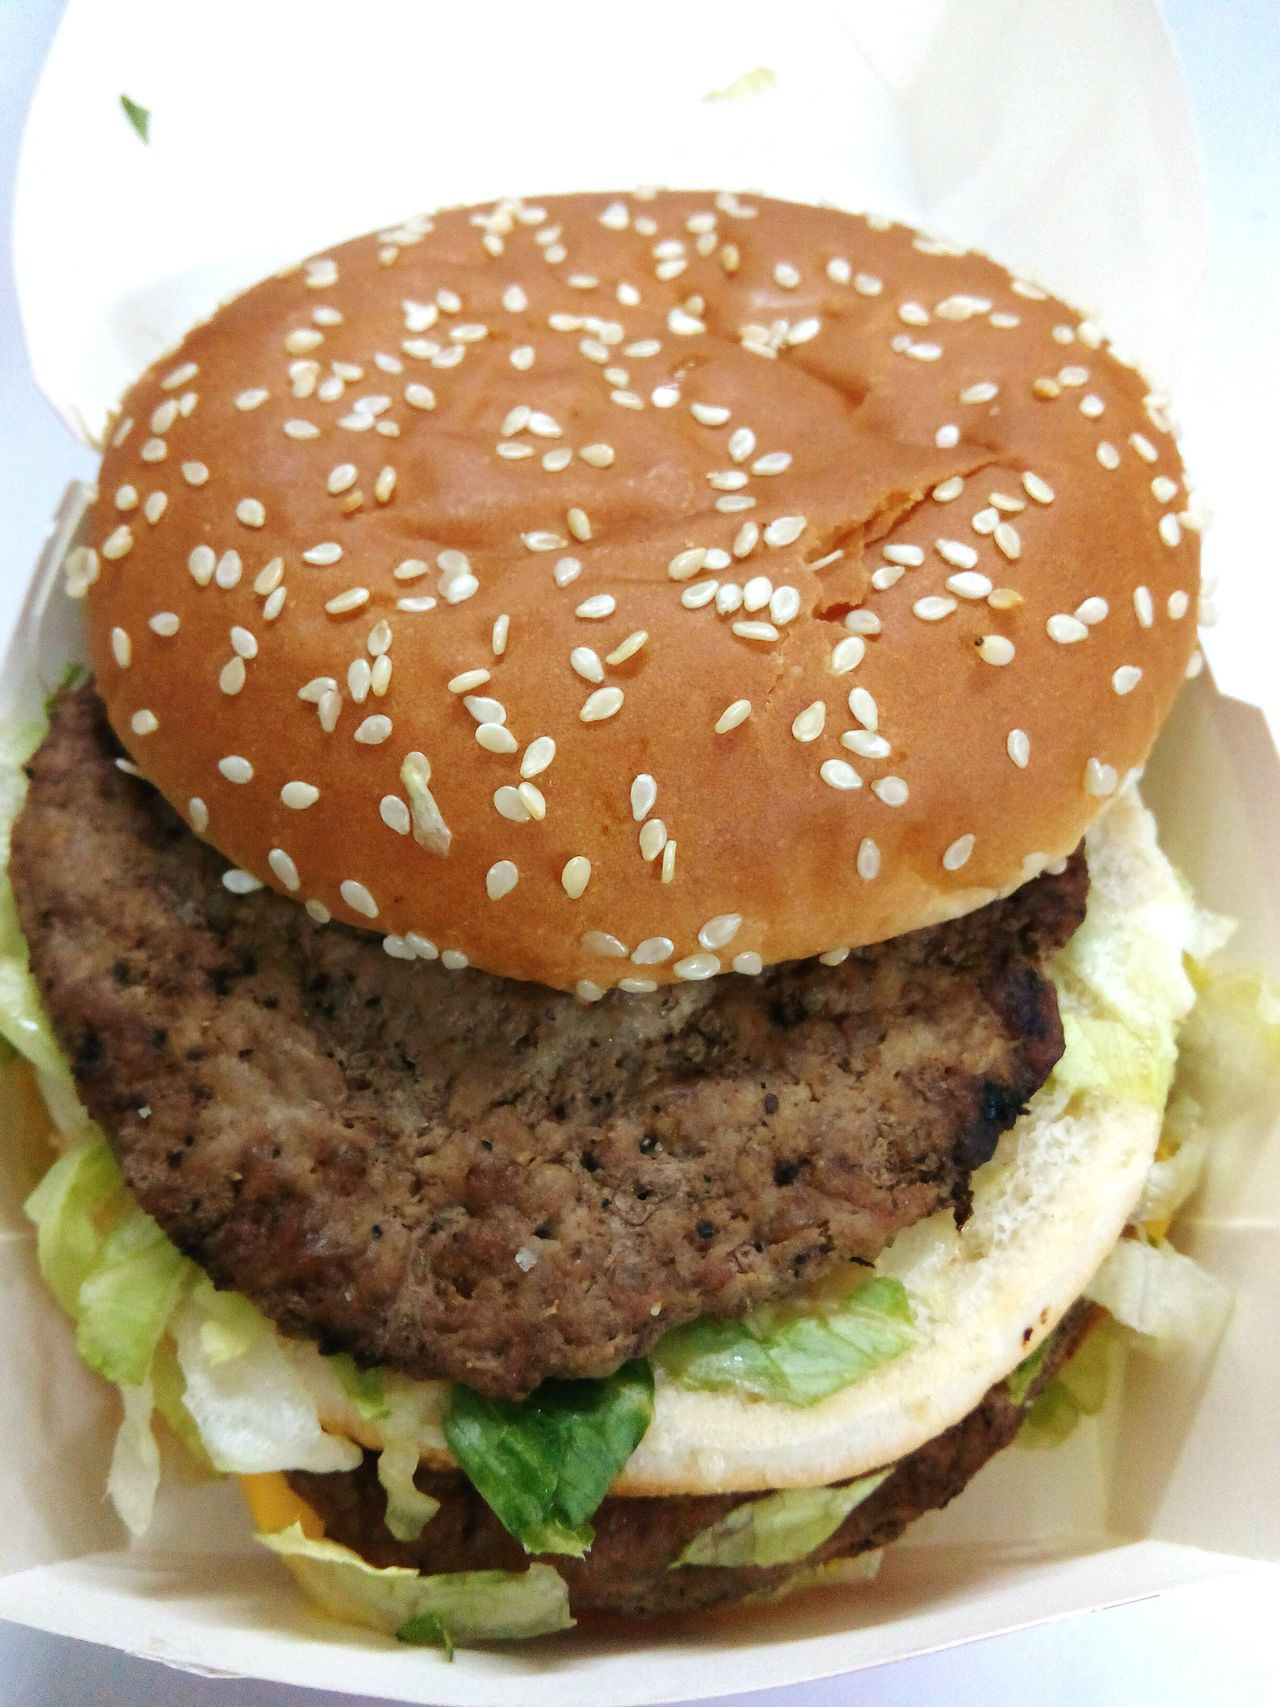 Unhealthy Eating Burger Sesame Hamburger Close-up Freshness Sesame Seed Fast Food No People Bun Food Seed Indoors  Ready-to-eat Day